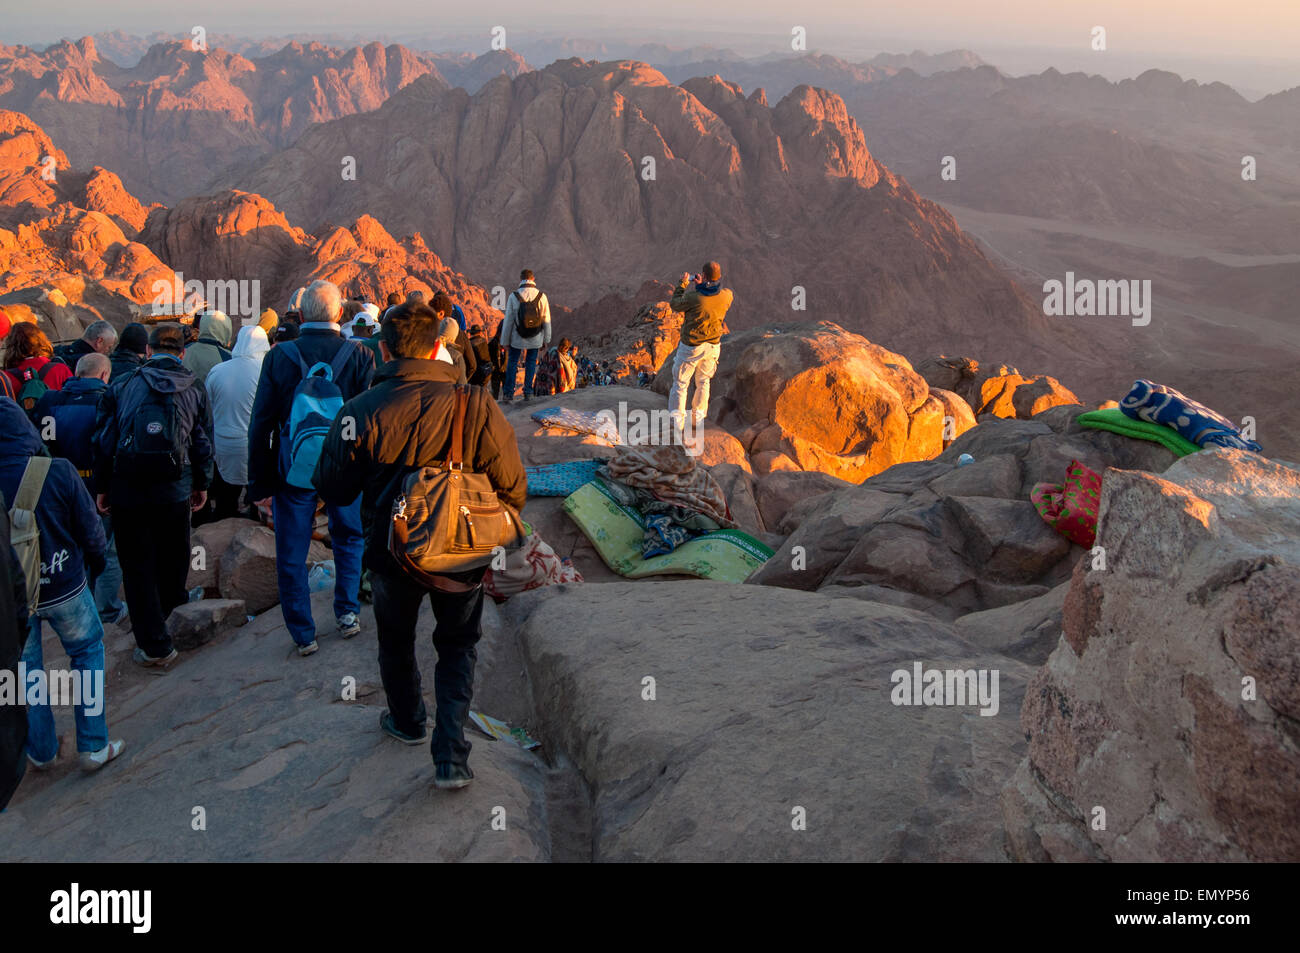 Pilgrims and tourists on the pathway from the Mount Sinai